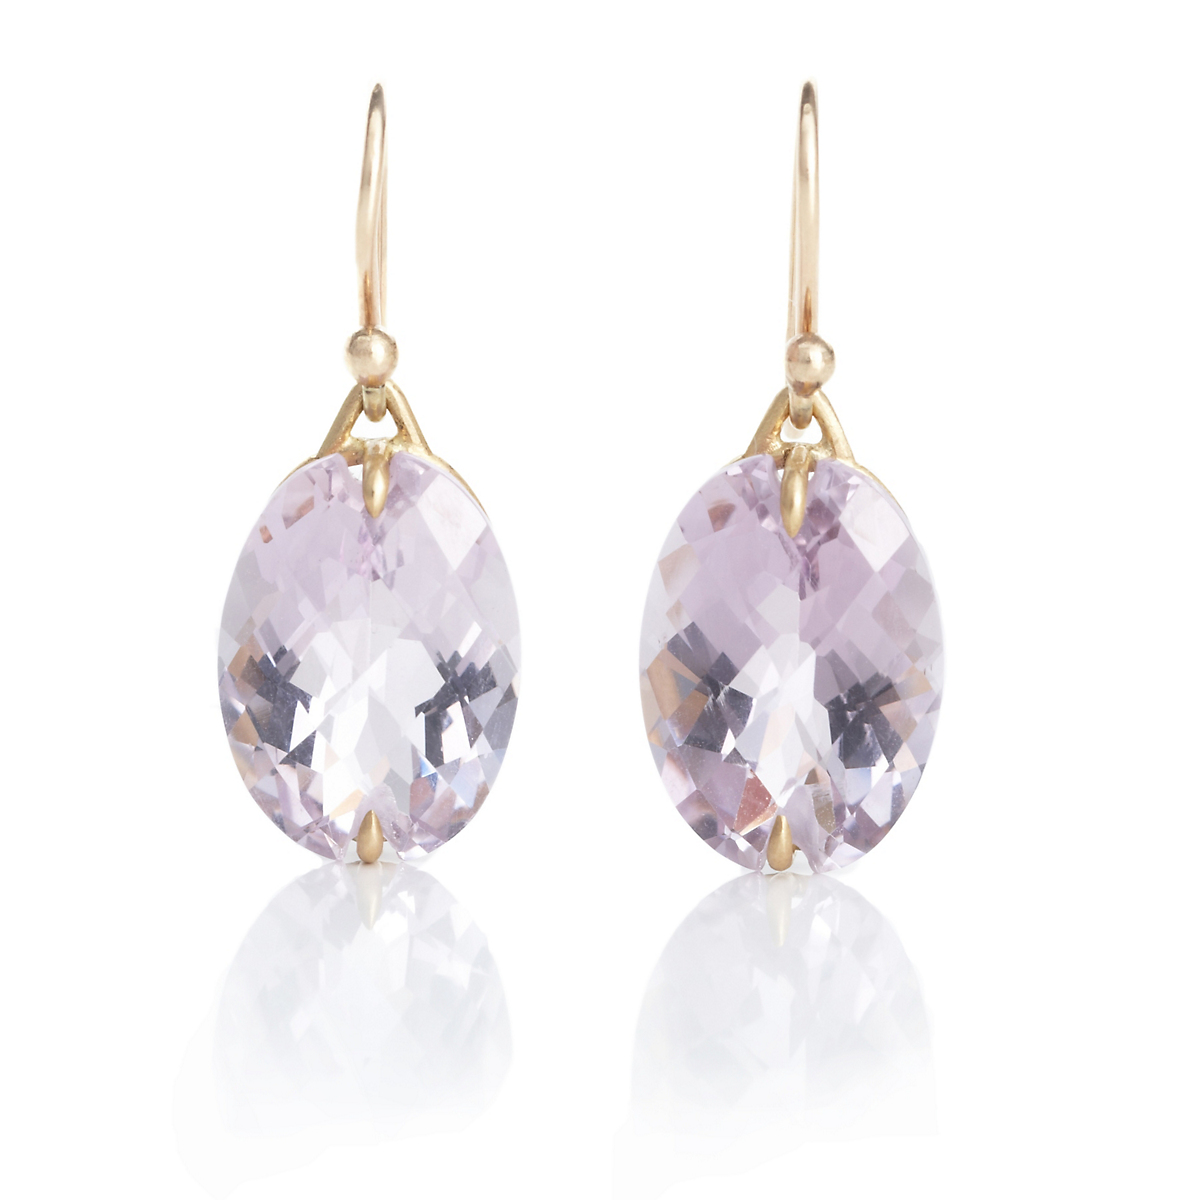 Gabriella Kiss Rose de France Amethyst Oval Earrings